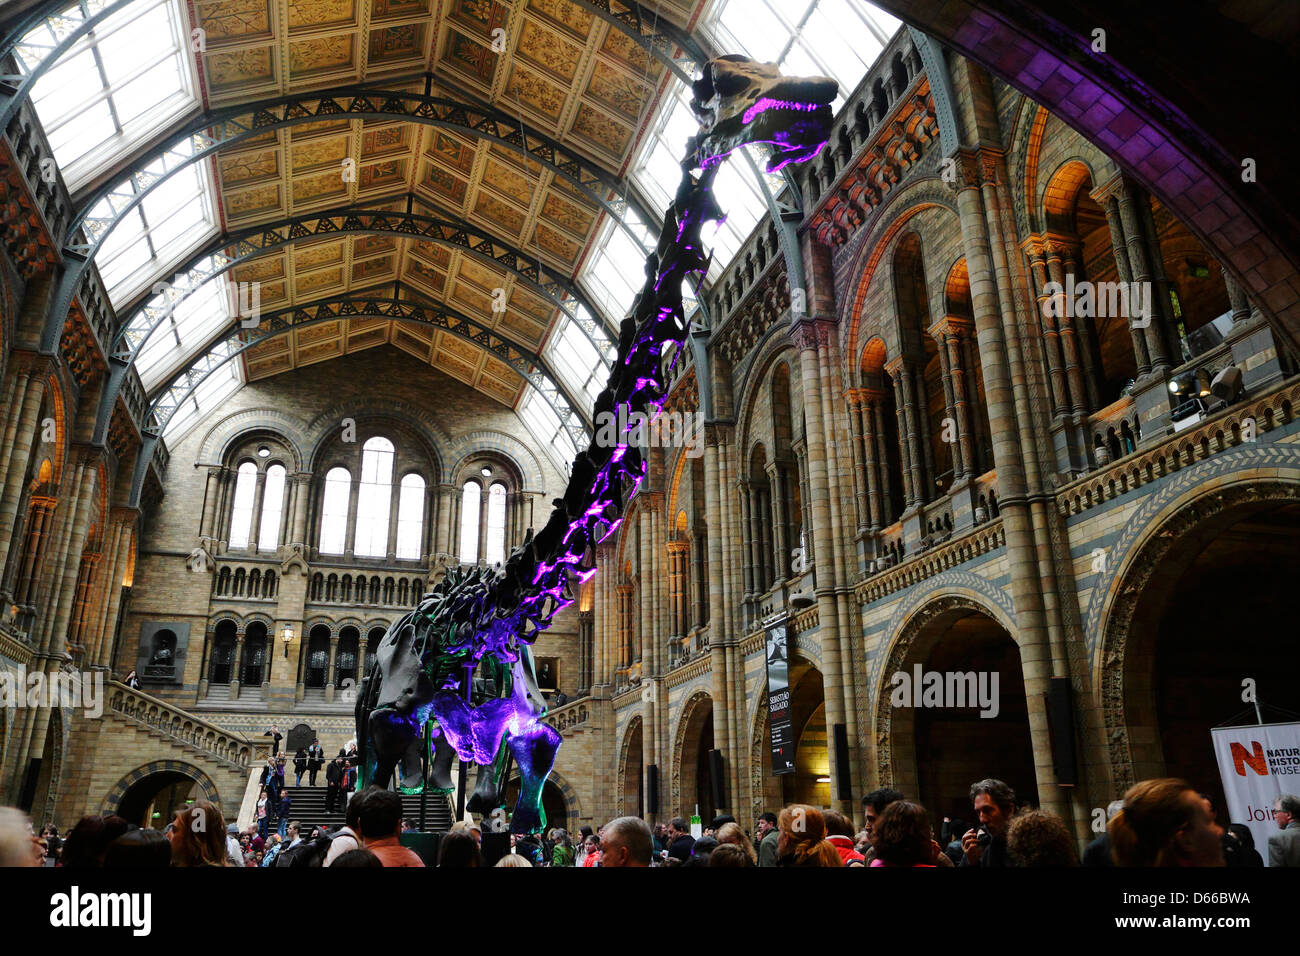 Diplodocus skeleton in central hall of Natural History museum, London, UK. - Stock Image